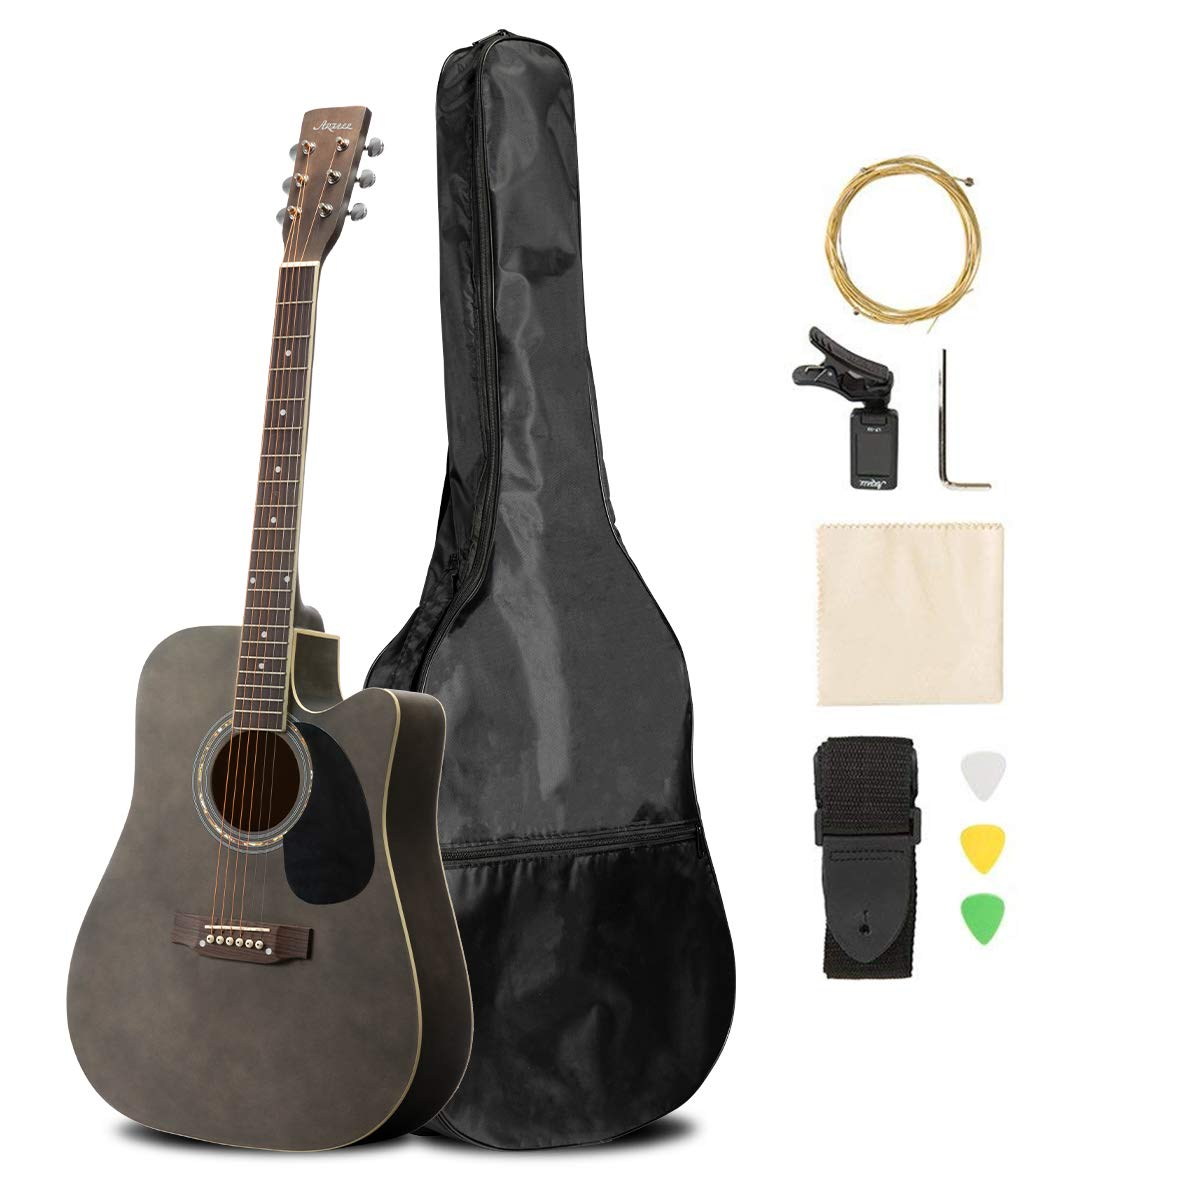 ARTALL 41 Inch Handmade Solid Wood Acoustic Cutaway Guitar Beginner Kit with Tuner, Strings, Picks, Strap, Matte Mocha